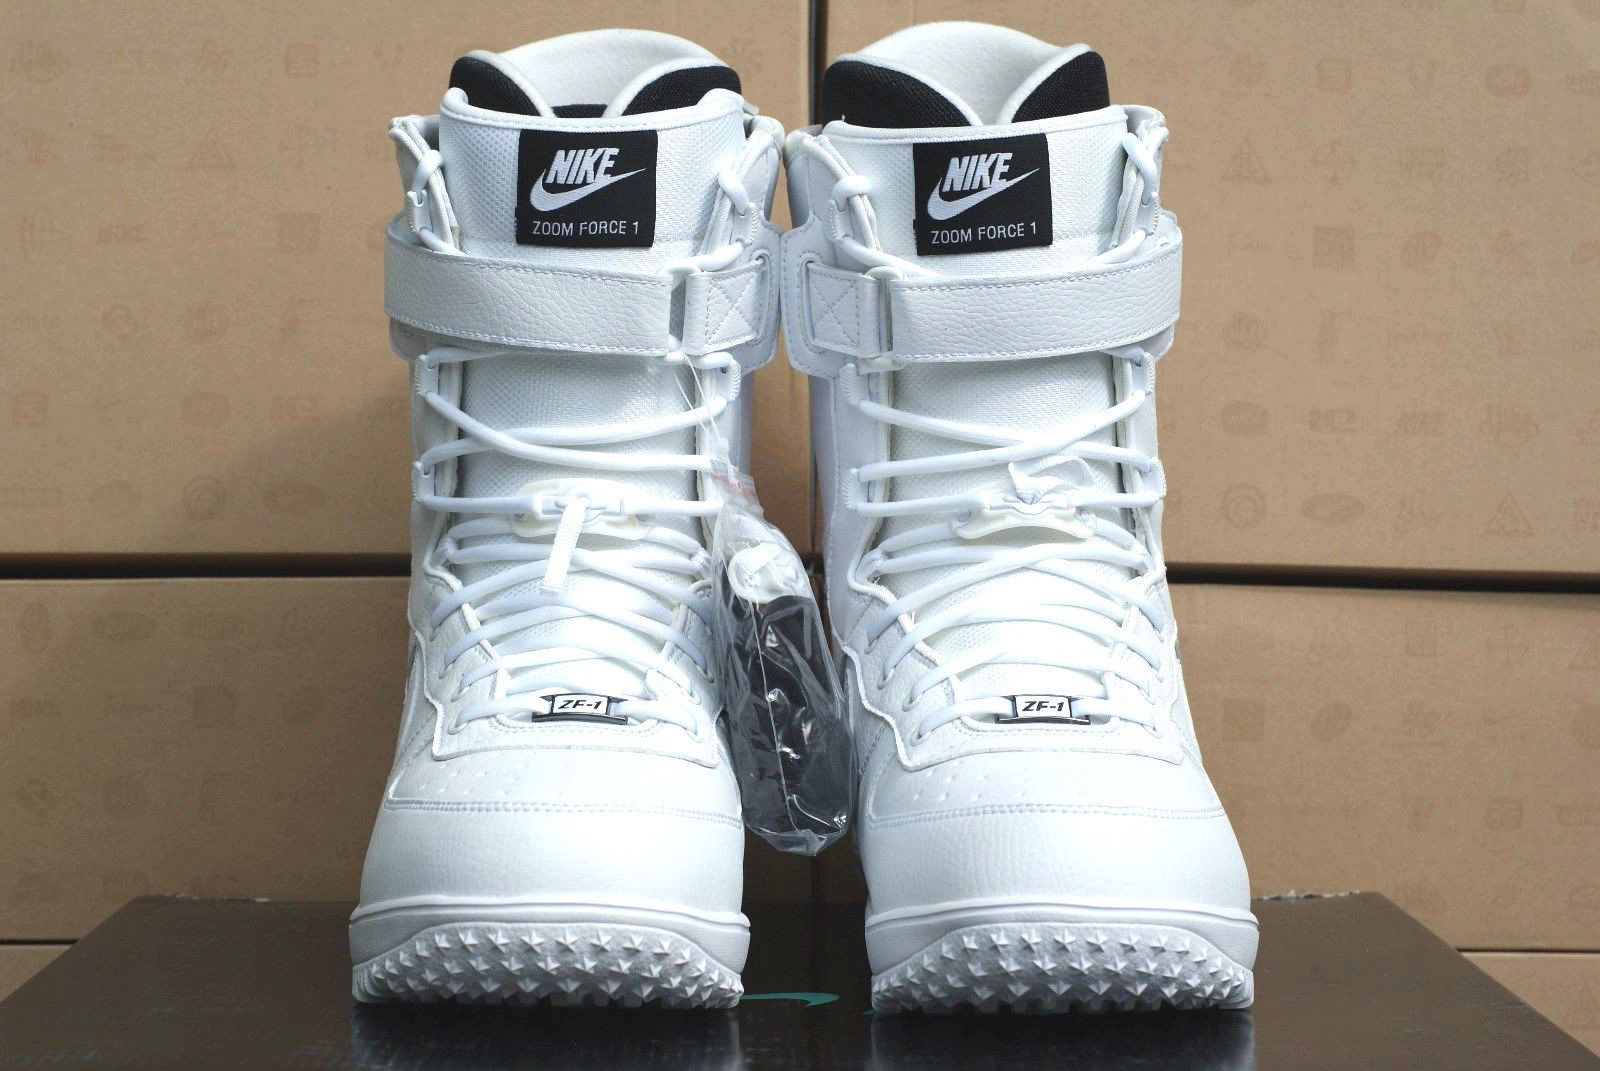 Nike zoom force 1 snowboarding boots white out edition air